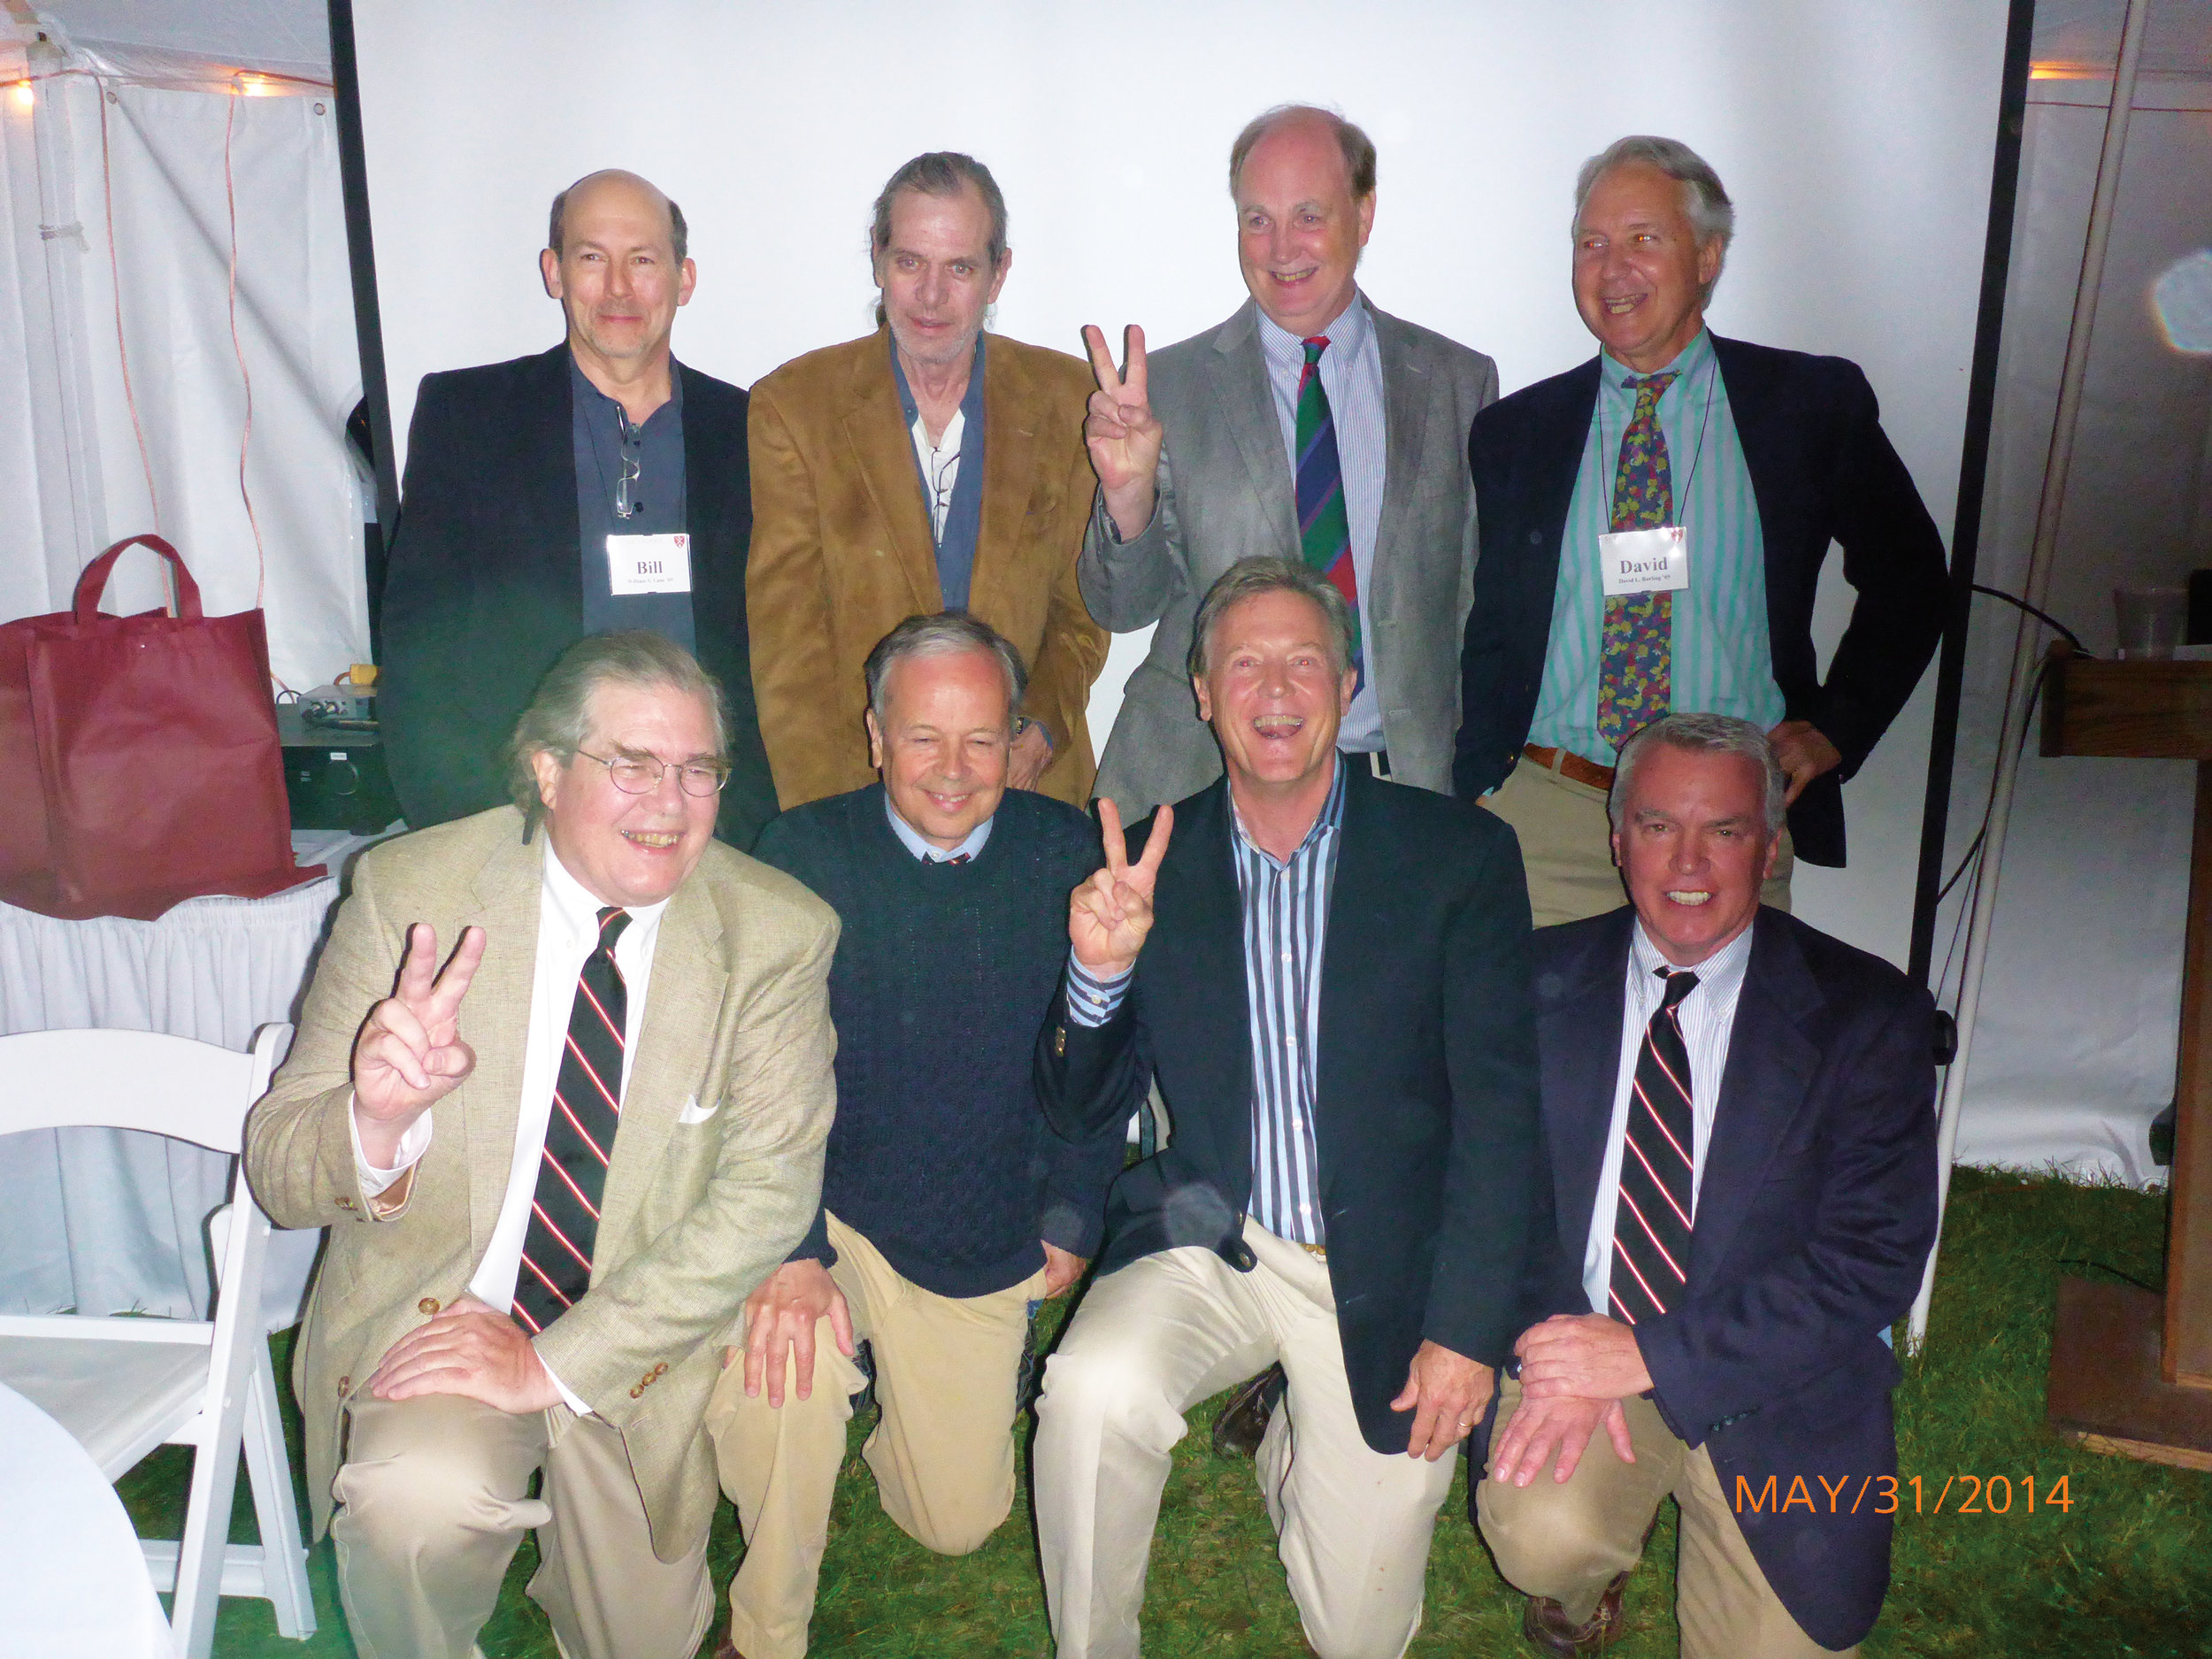 Members of the Form of 1969 who attended Woodstock gathered at their 45th reunion: (l. to r.) front row: Trip Farnsworth, JQ Adams, Terry Hunt, Tom Iglehart; second row: Bill Lane, Steve Lievens, Charlie Hickox, and David Burling.